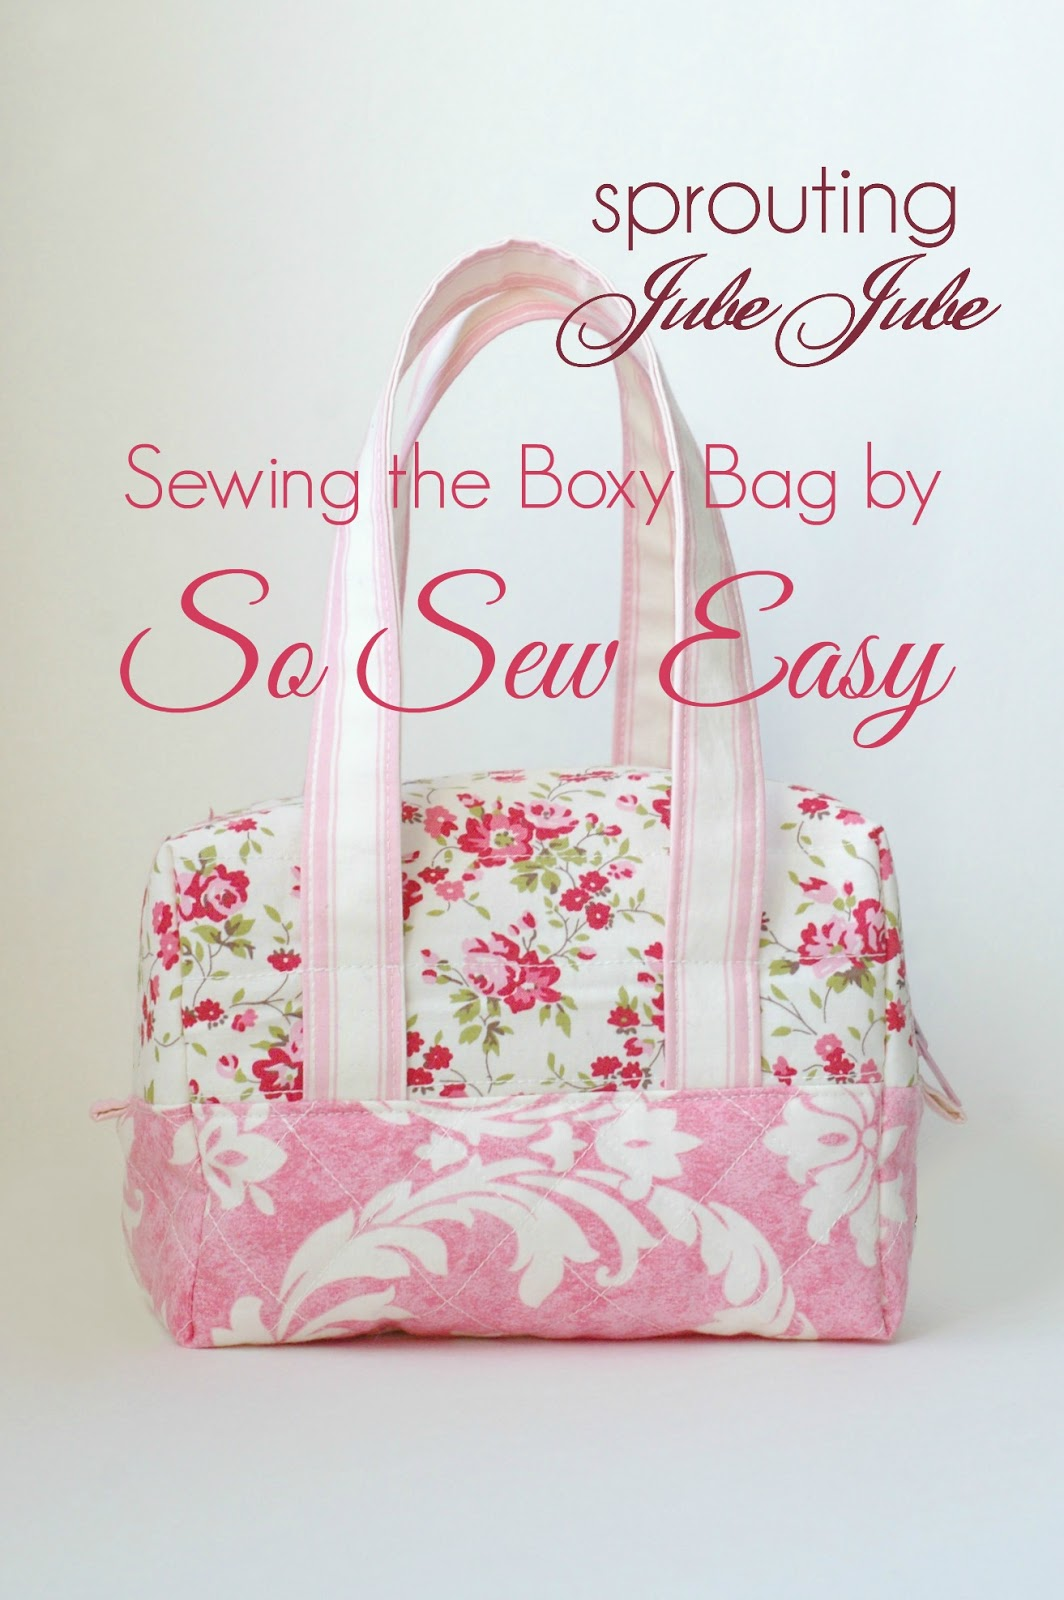 Easy Sewing Projects For Beginners: Sprouting JubeJube: Boxy Bag By So Sew Easy